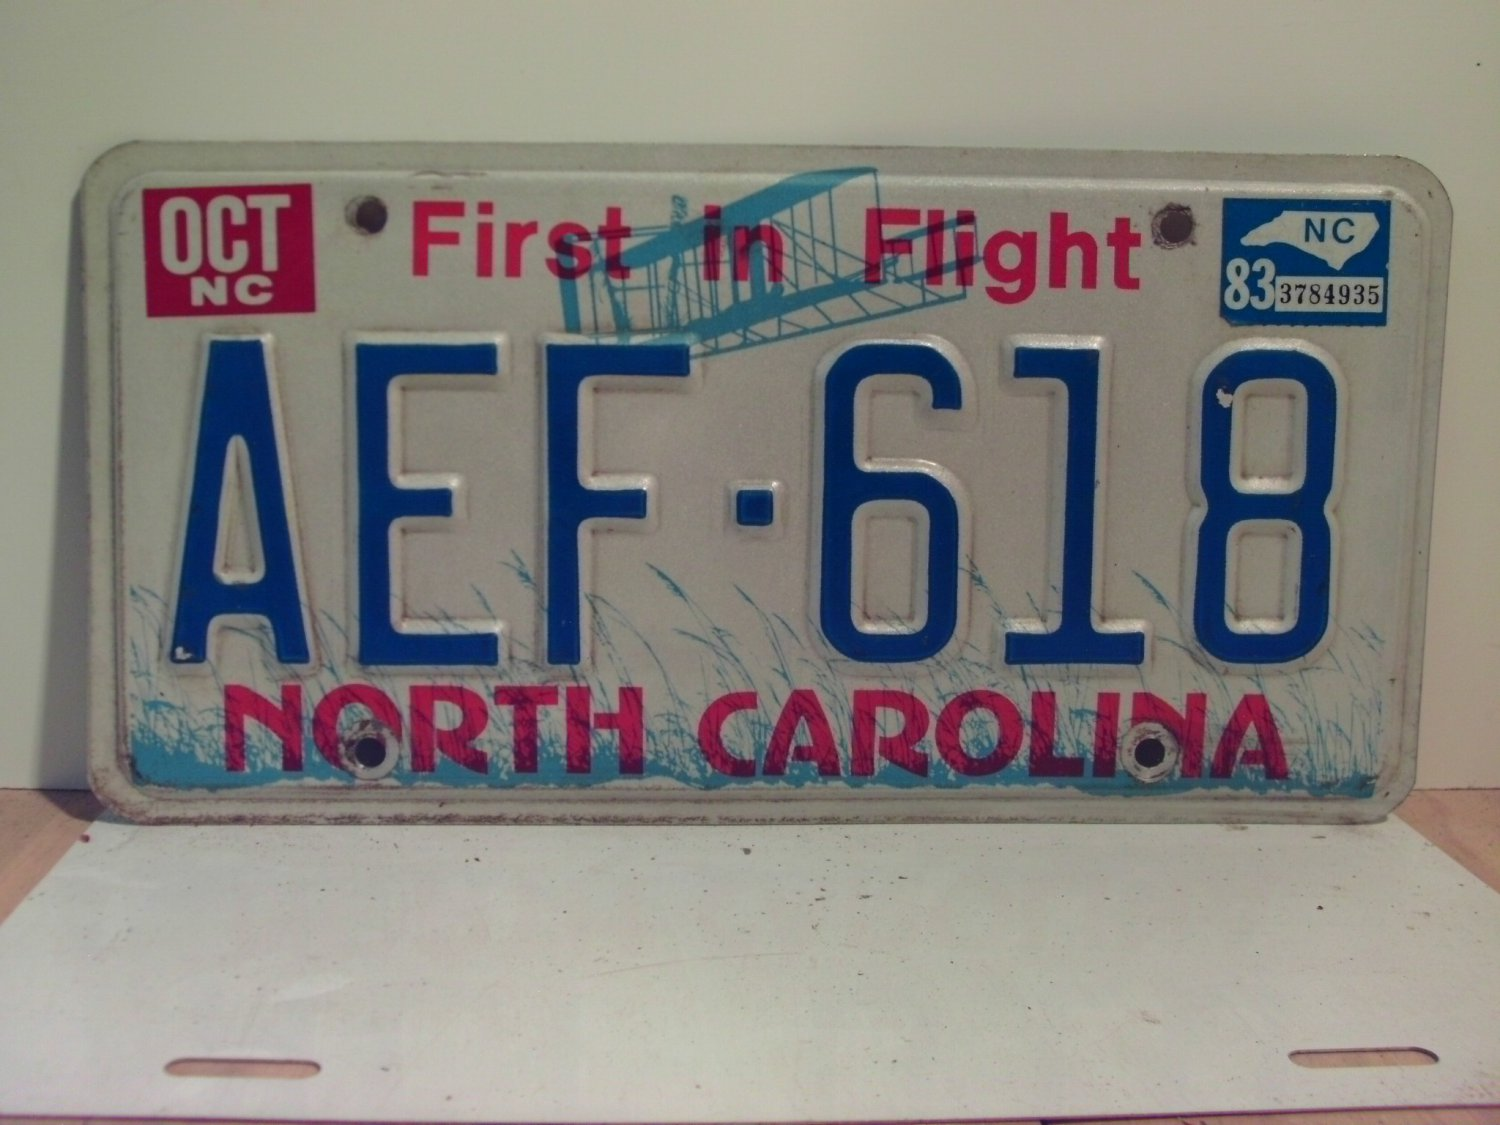 1983 North Carolina NC Passenger YOM License Plate AEF-618 Excellent!